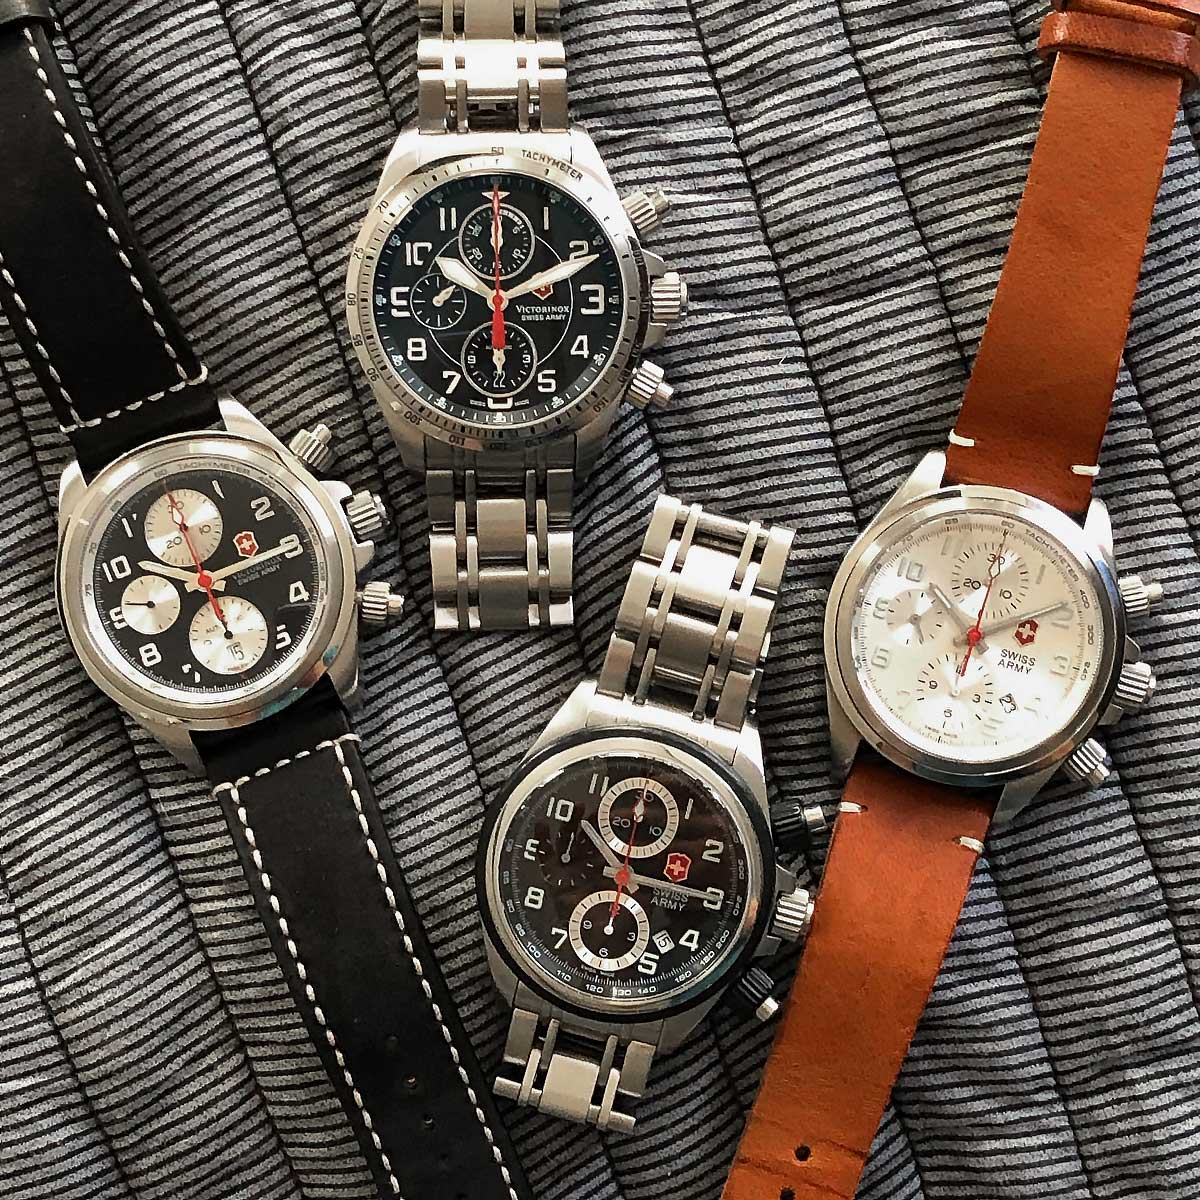 Image result for This beautiful Swiss Army watch birthday gift images